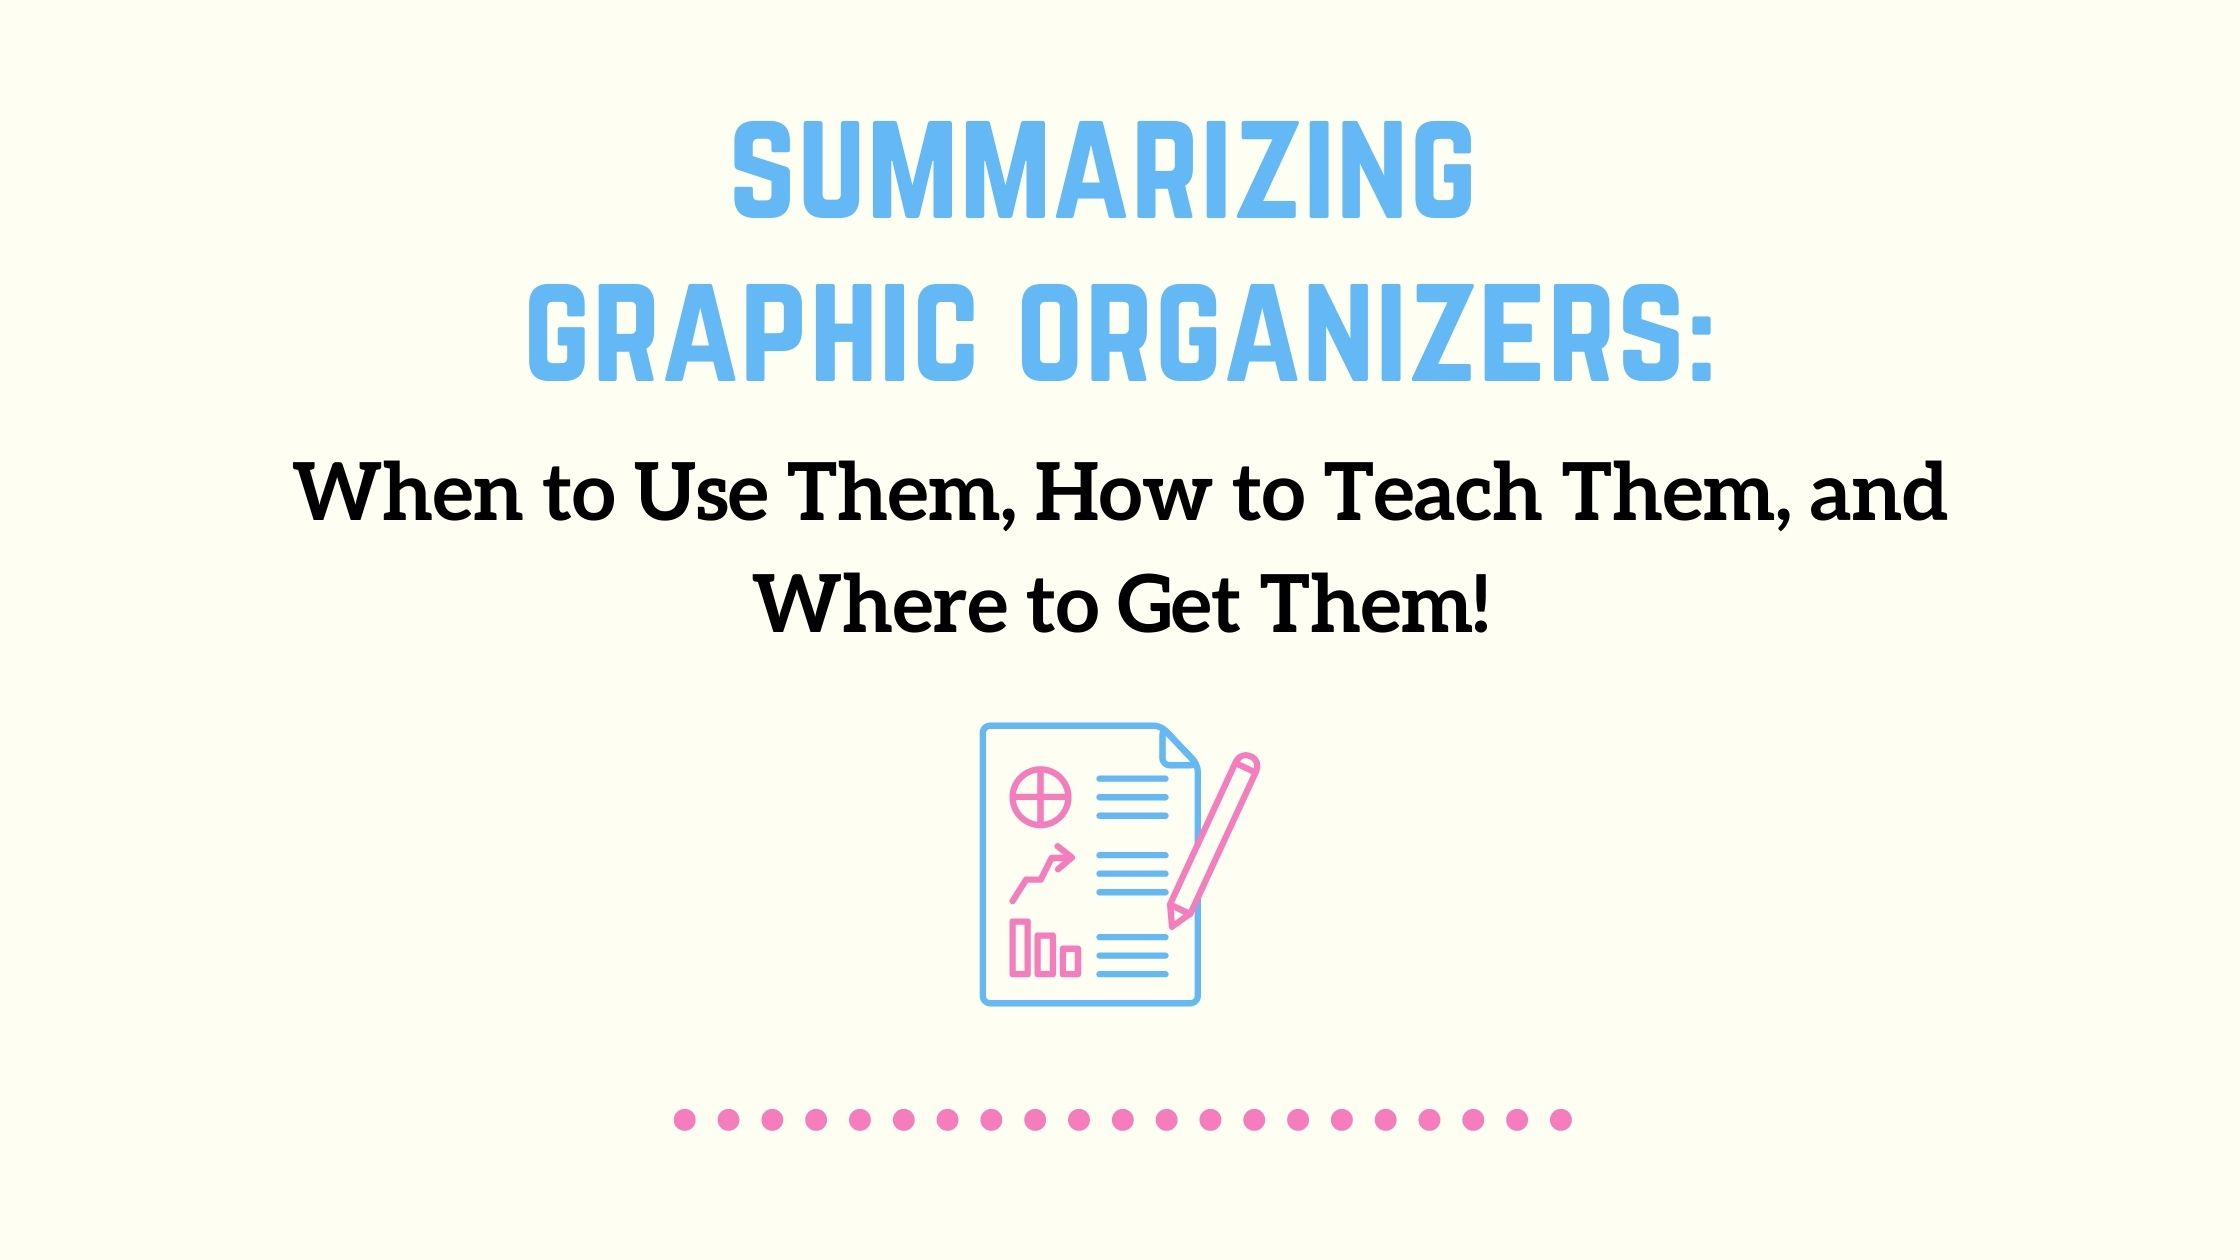 summarizing graphic organizers: when to use them, how to teach them, where to get them